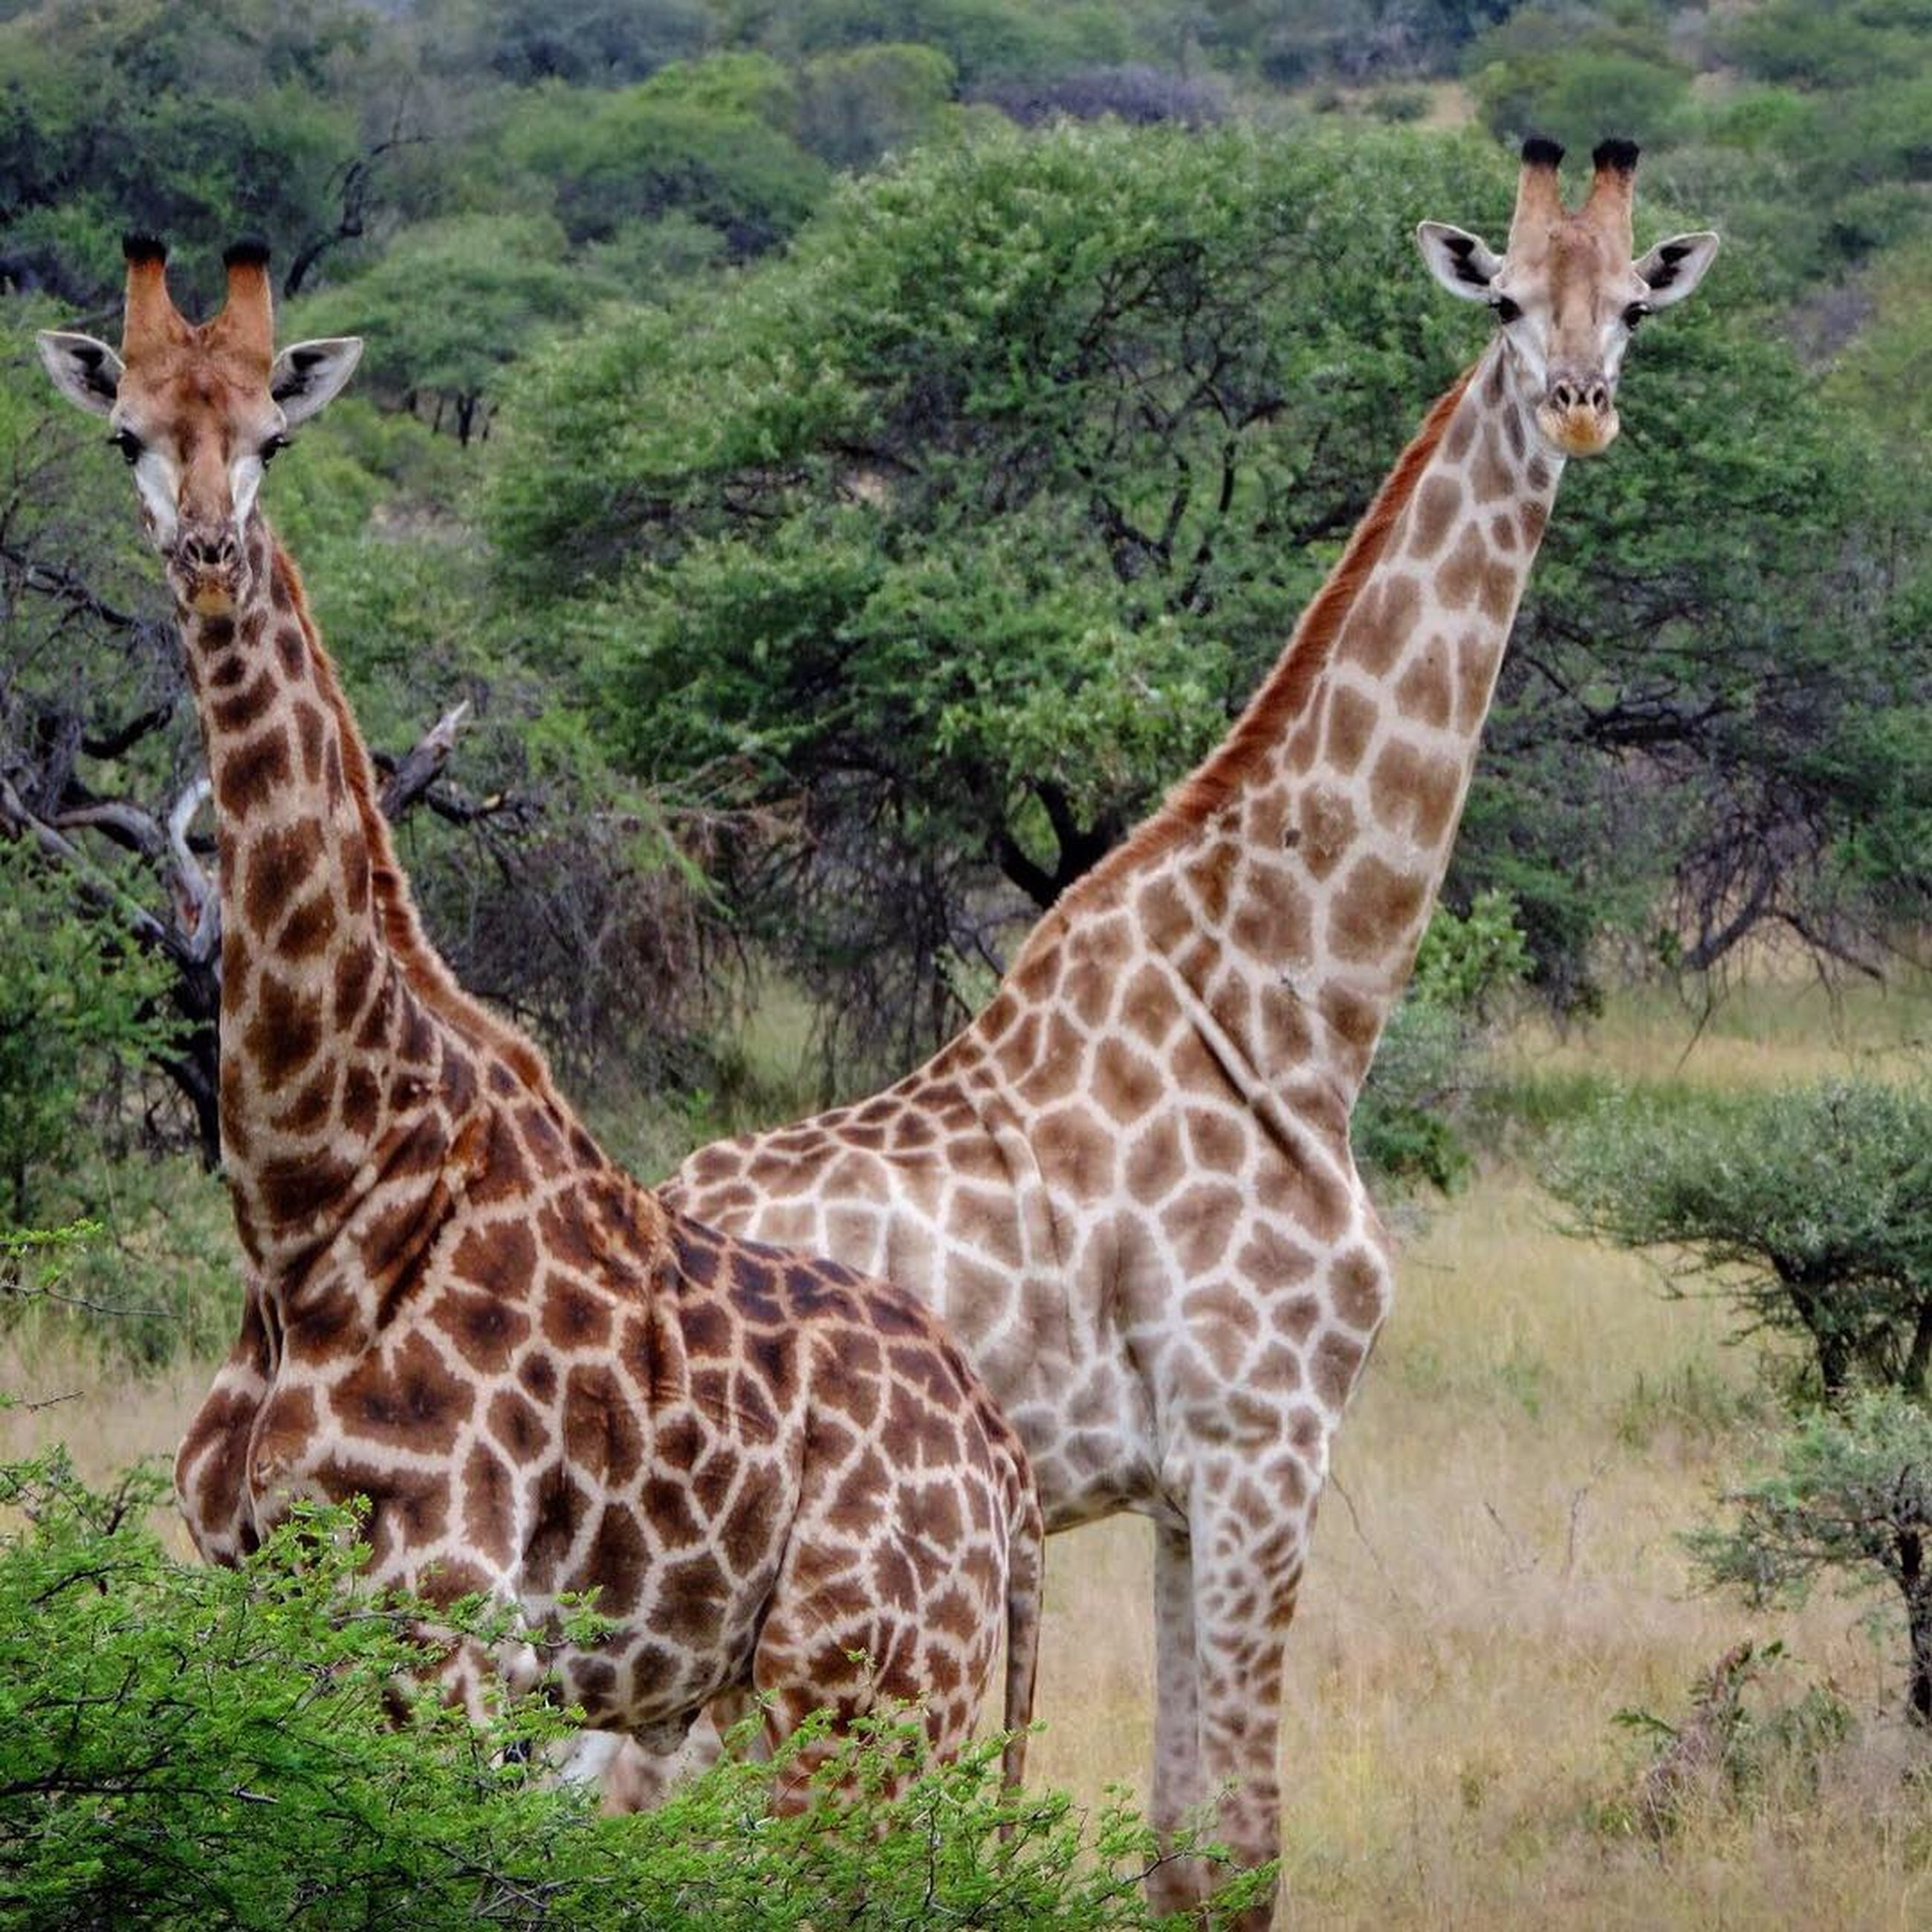 animal themes, animal, animal wildlife, animals in the wild, mammal, safari, giraffe, nature, plant, group of animals, no people, grass, standing, day, two animals, vertebrate, tree, portrait, natural pattern, outdoors, animal neck, herbivorous, animal family